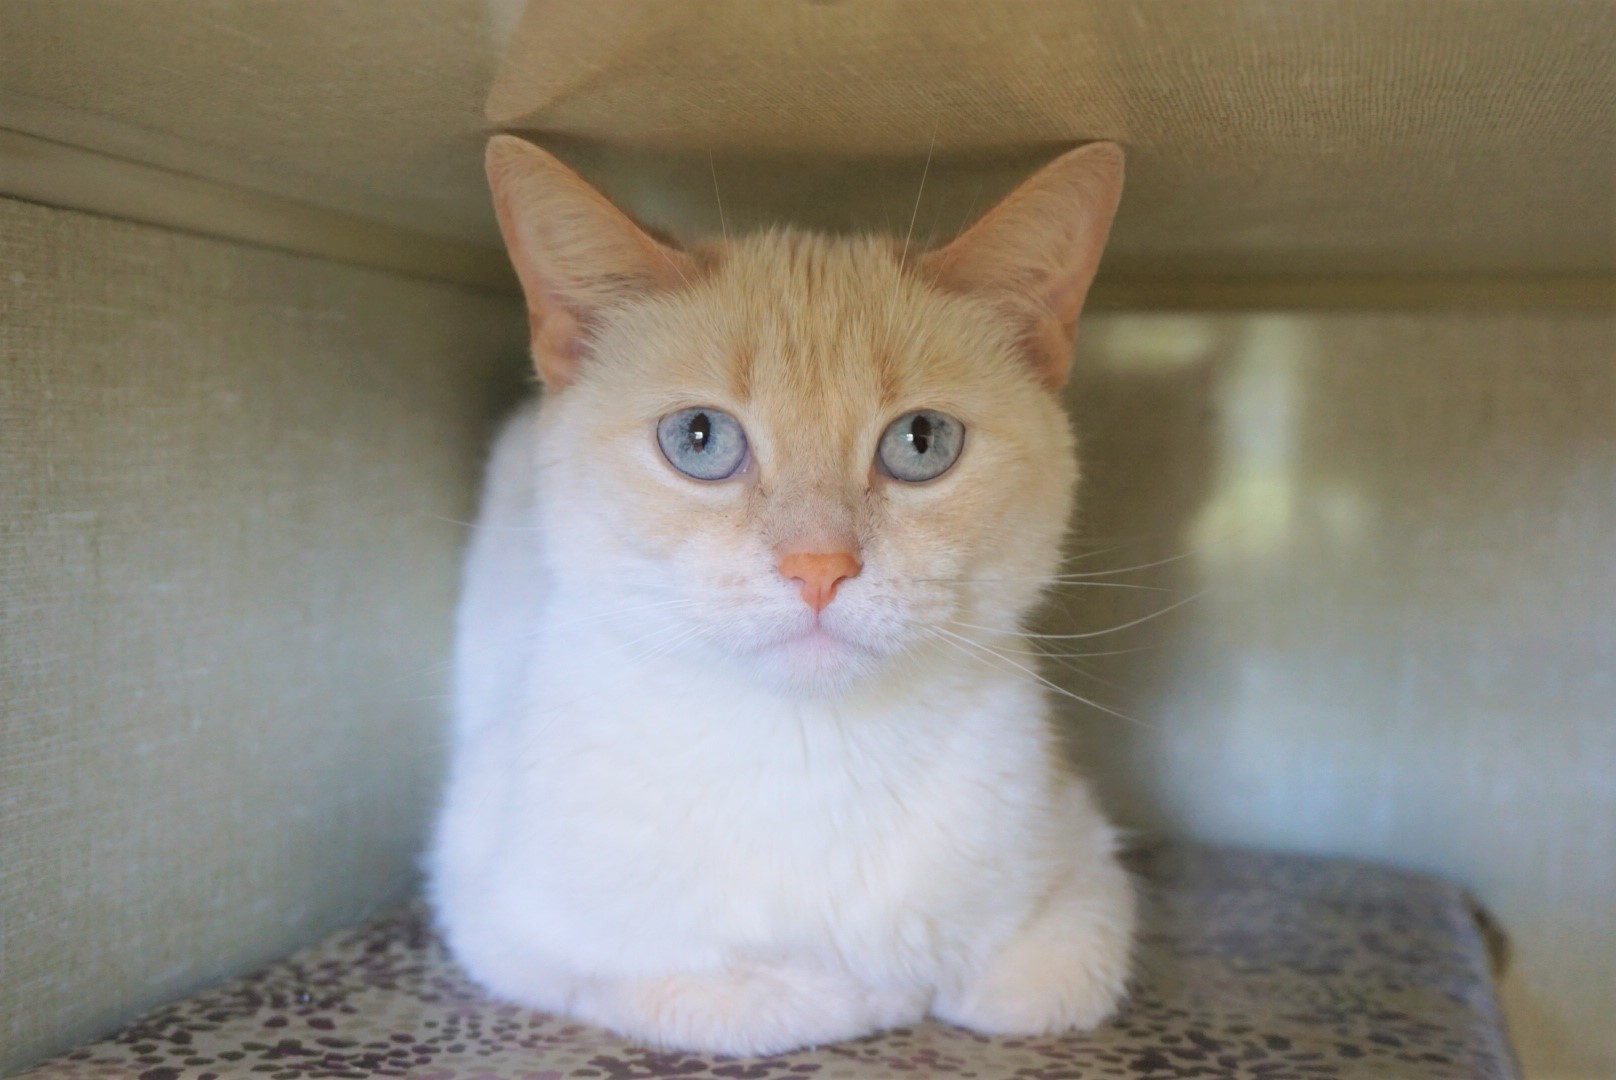 Siamese Cross Flame Point Female - spayed Date of birth: 2013 (5 years old) Meet Leia! This flame point beauty is brand new to our shelter building. She is not a huge fan of other cats, but she is good with people and will happily accept pets once she gets a few sniffs in! She likes to play as well, so be sure to stock up on toys if you're interested in taking her home! 😺 If you would like to meet Leia, you can visit her at our store location at 38 Barberry Road during regular opening hours.